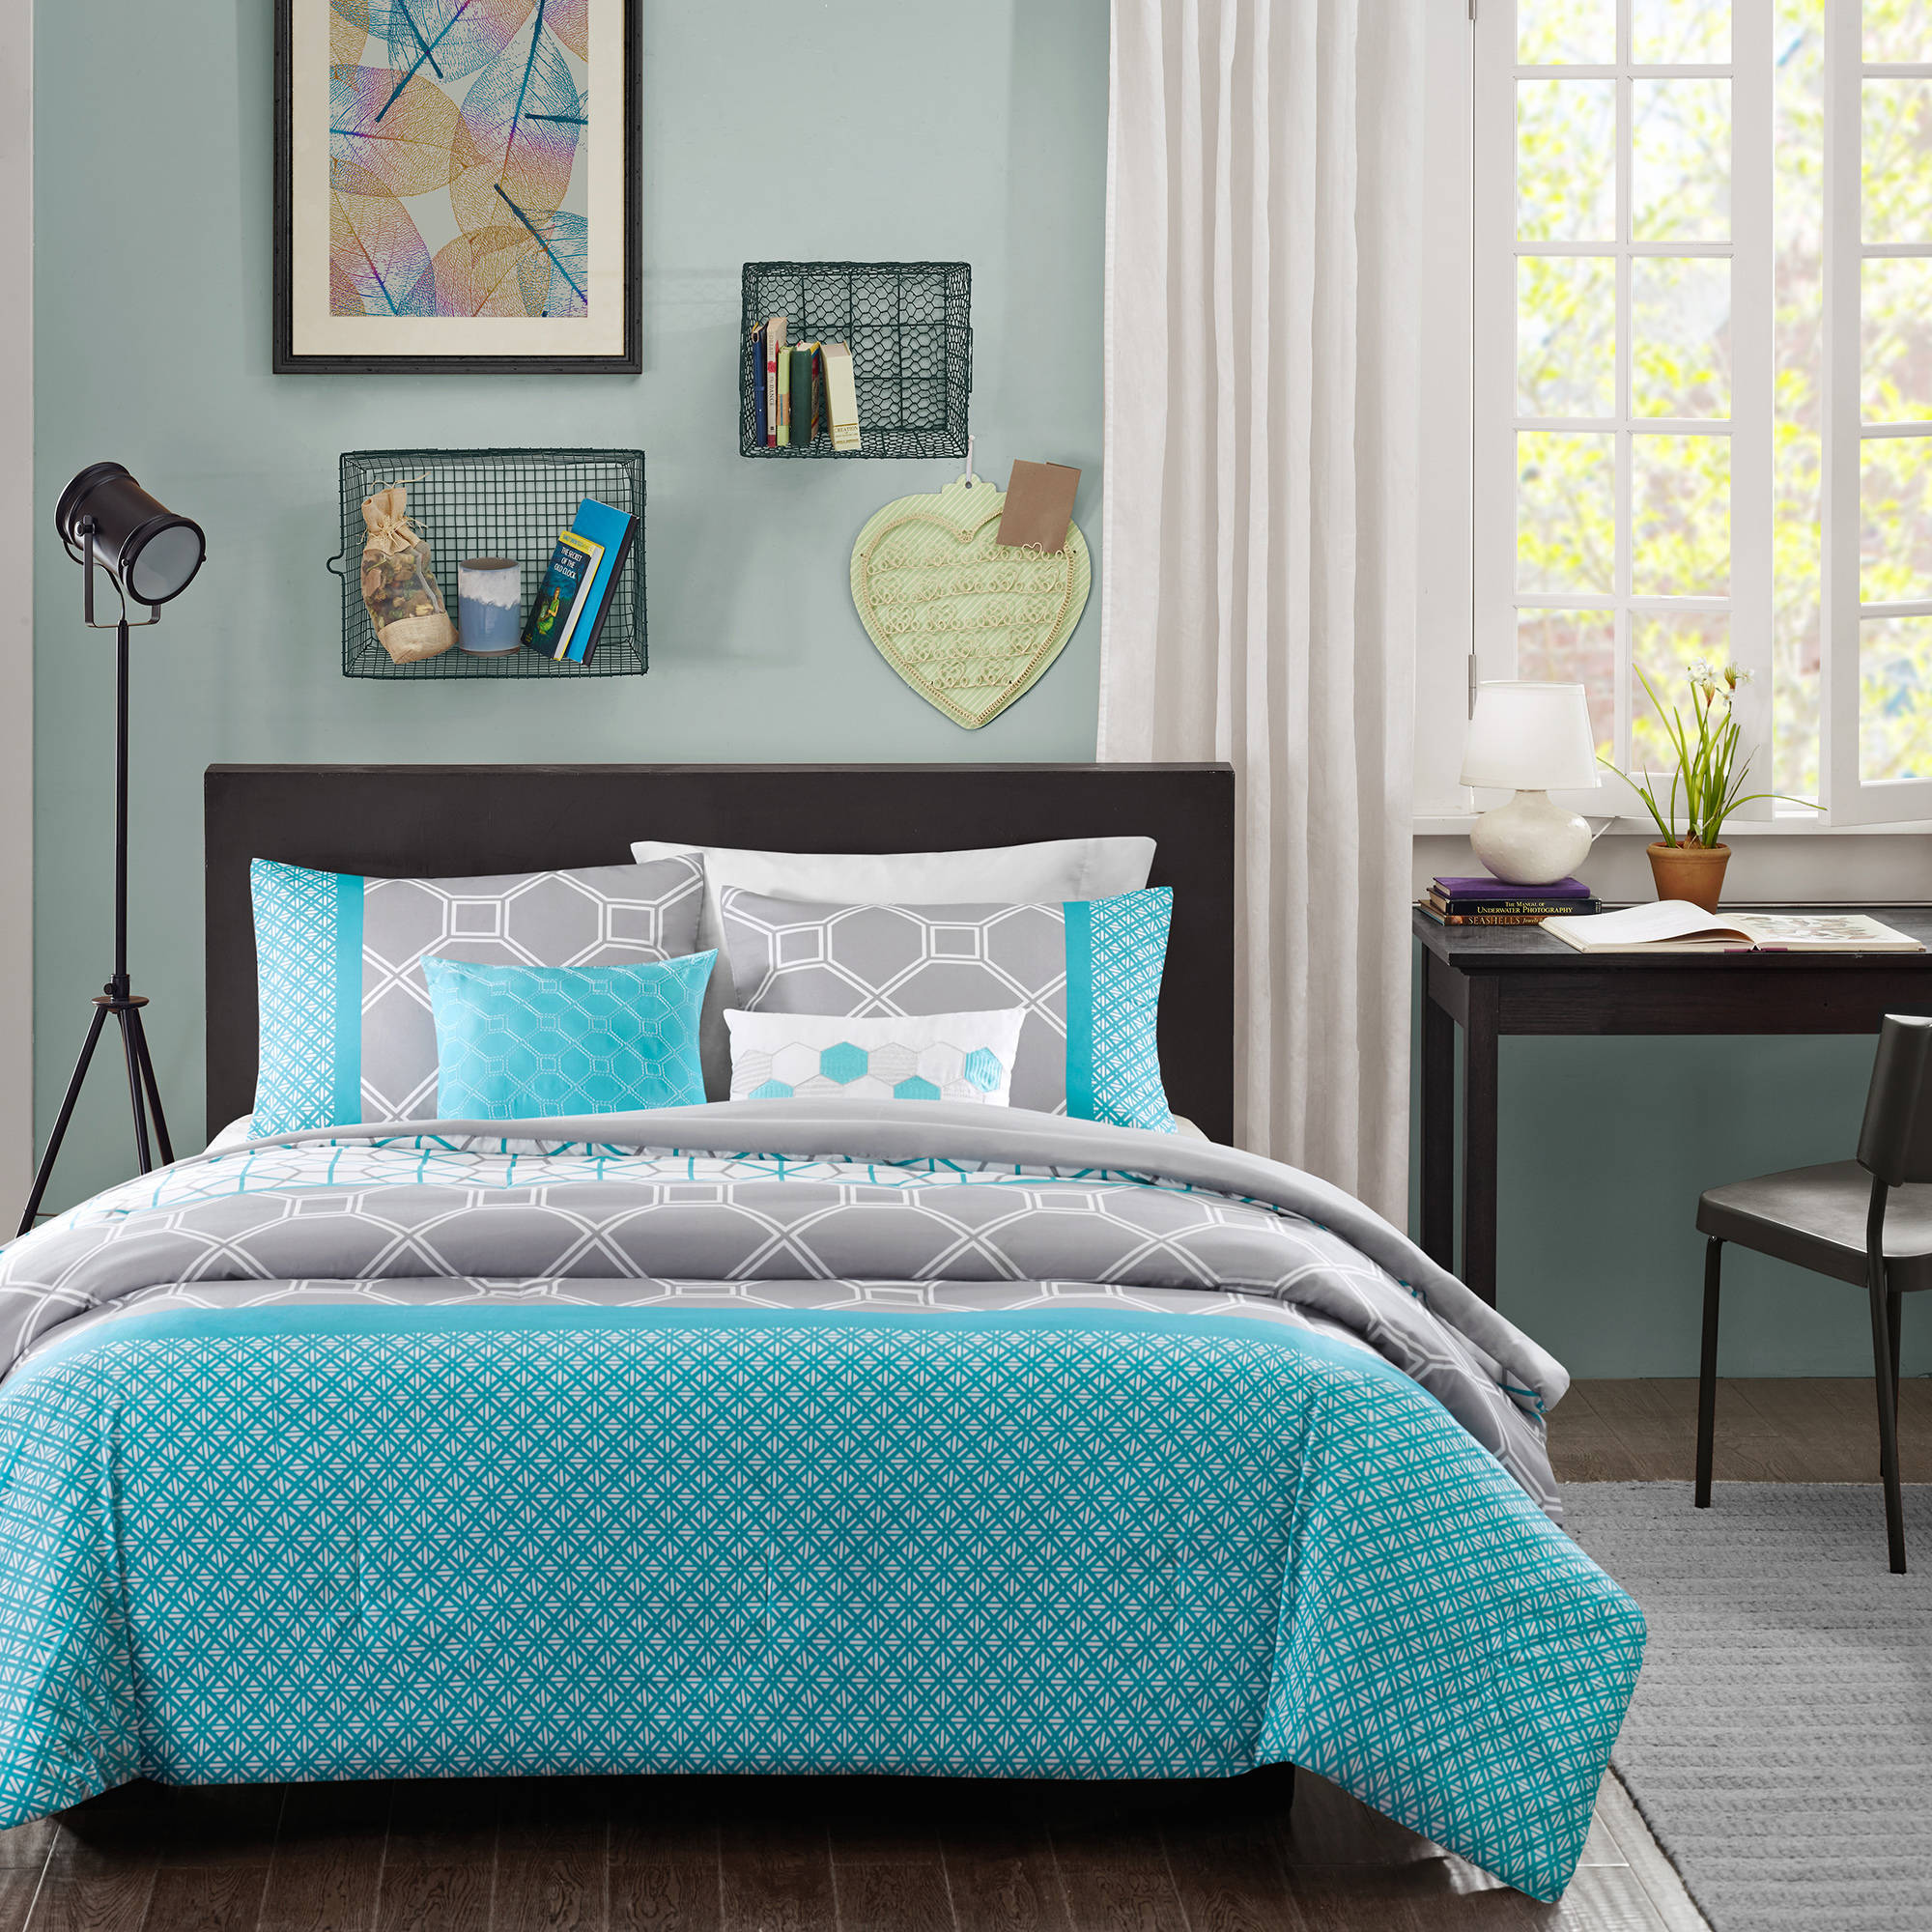 blue twin sets luxury comforter lyon cover silk set bedding design plus size quilts solid quilt king turquoise signature teal duvet by